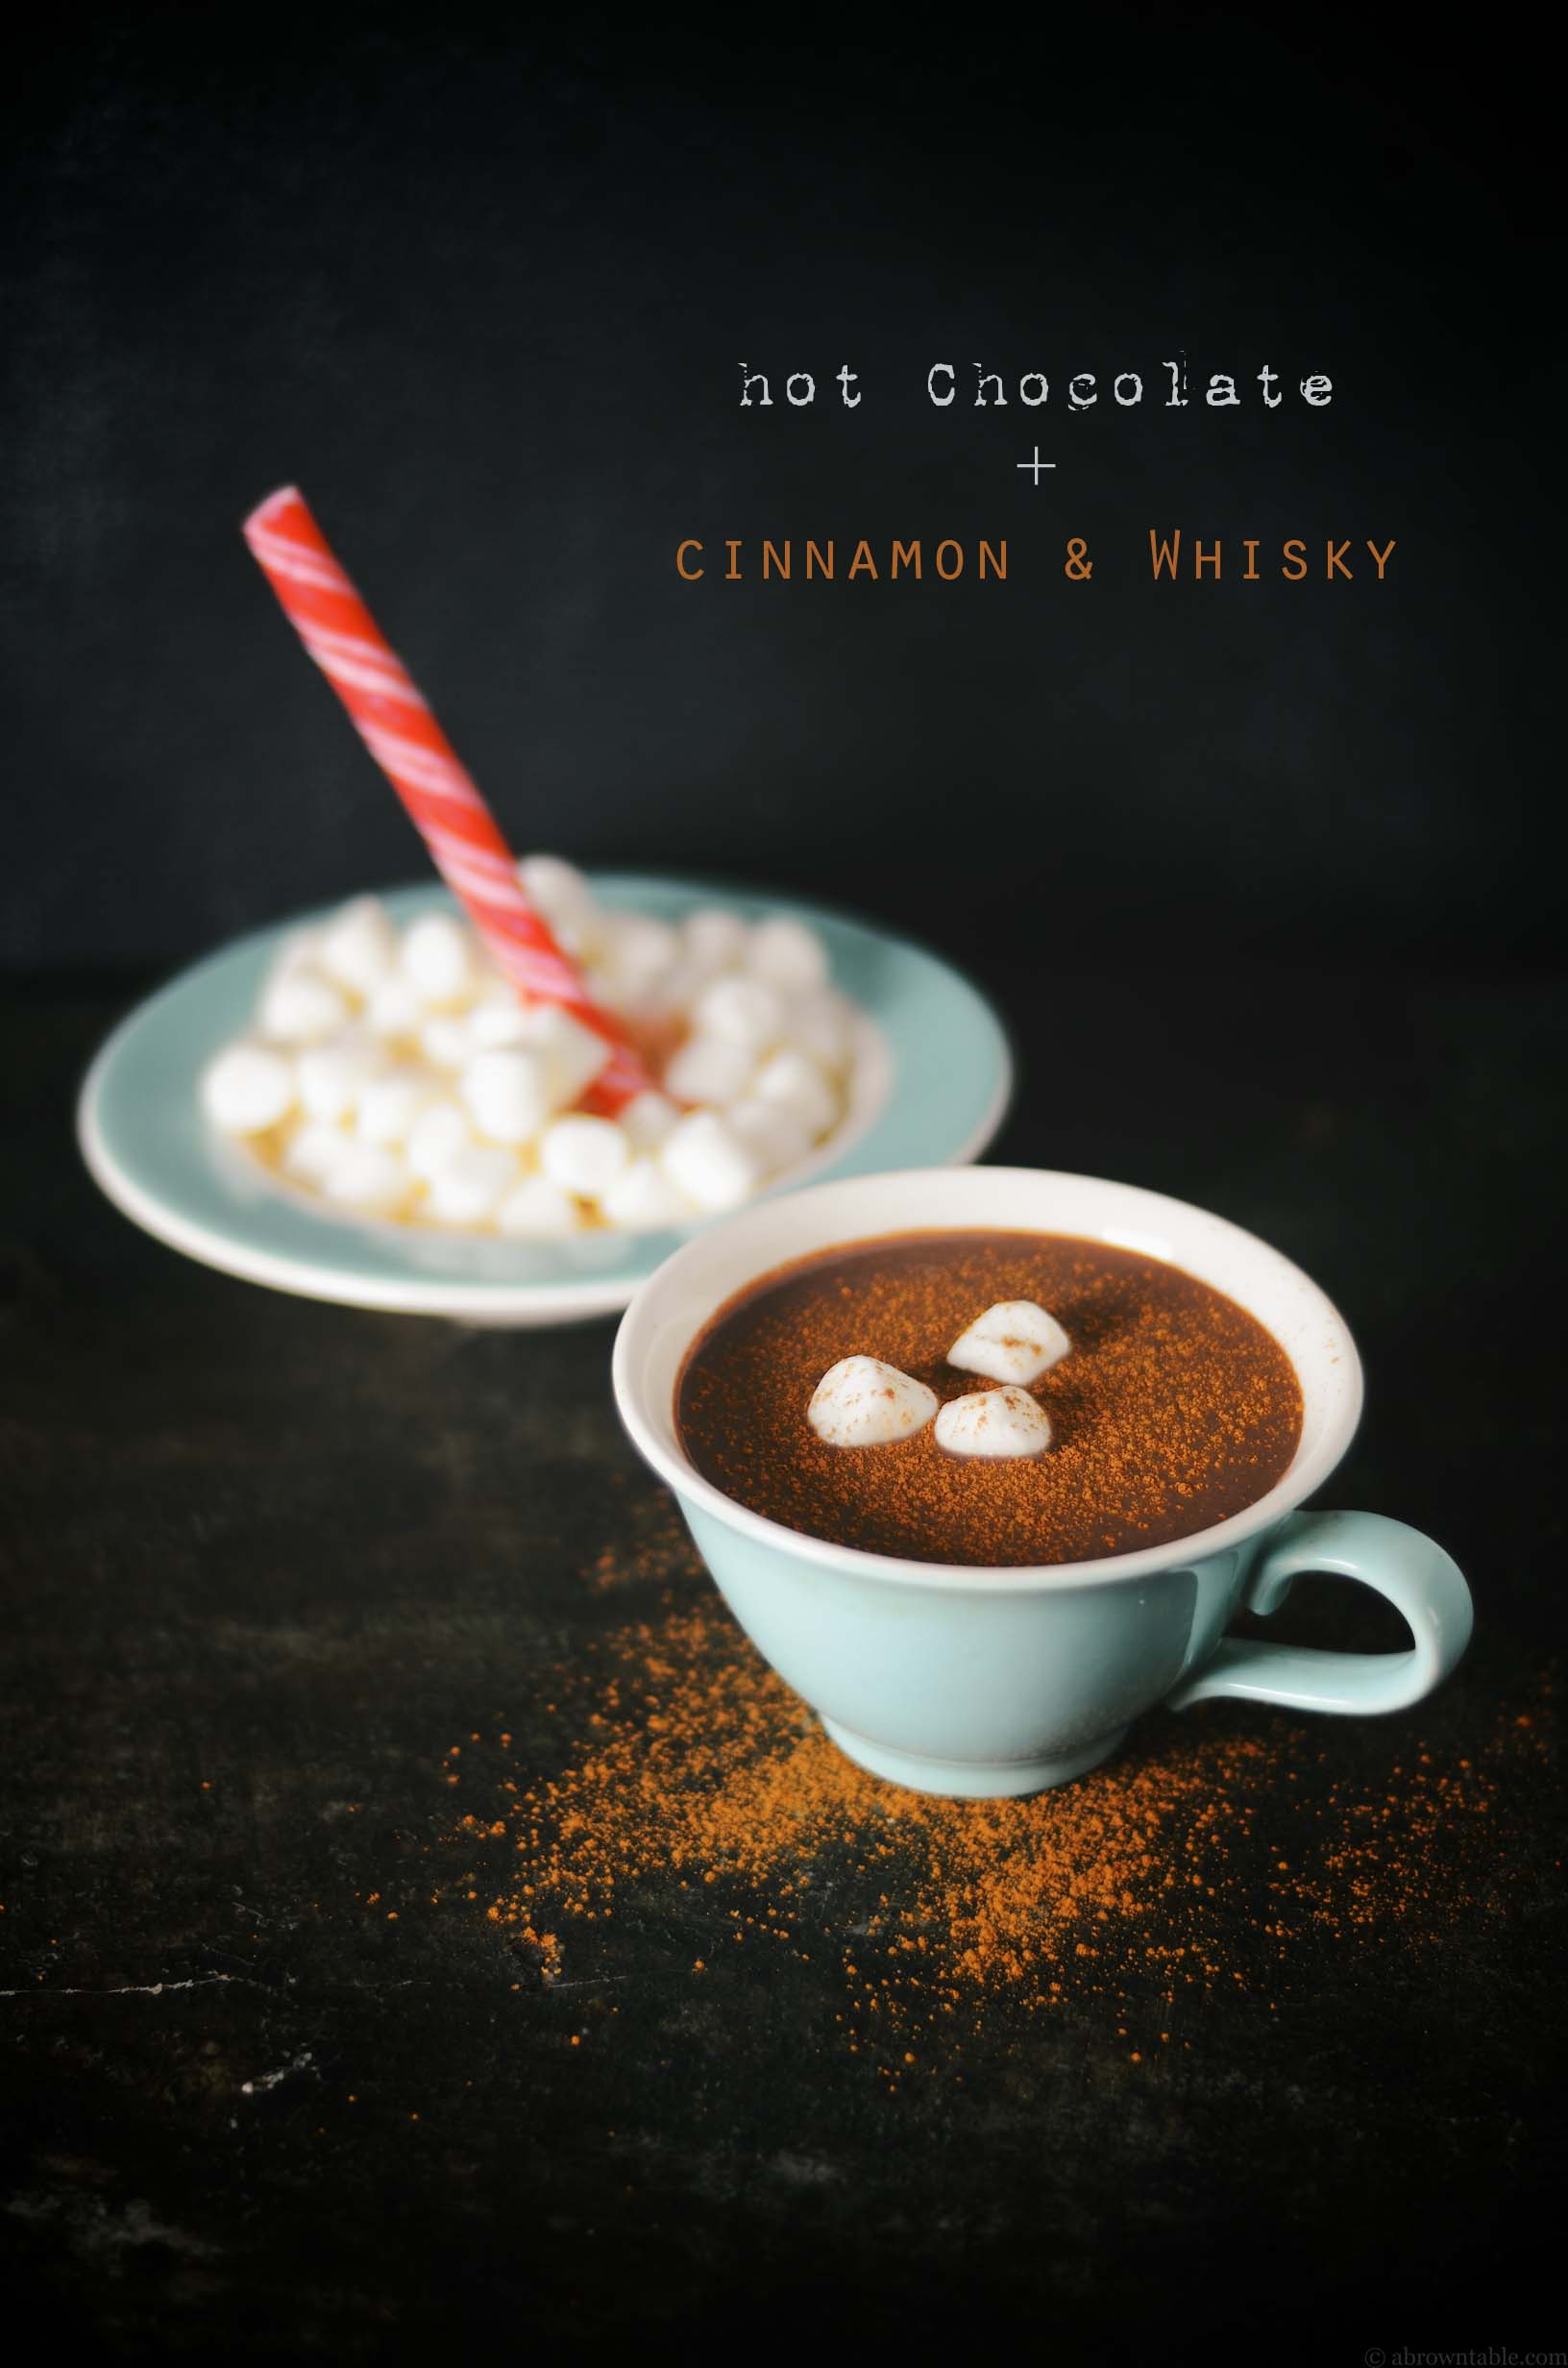 peppermint hot chocolate with cinnamon and whisky